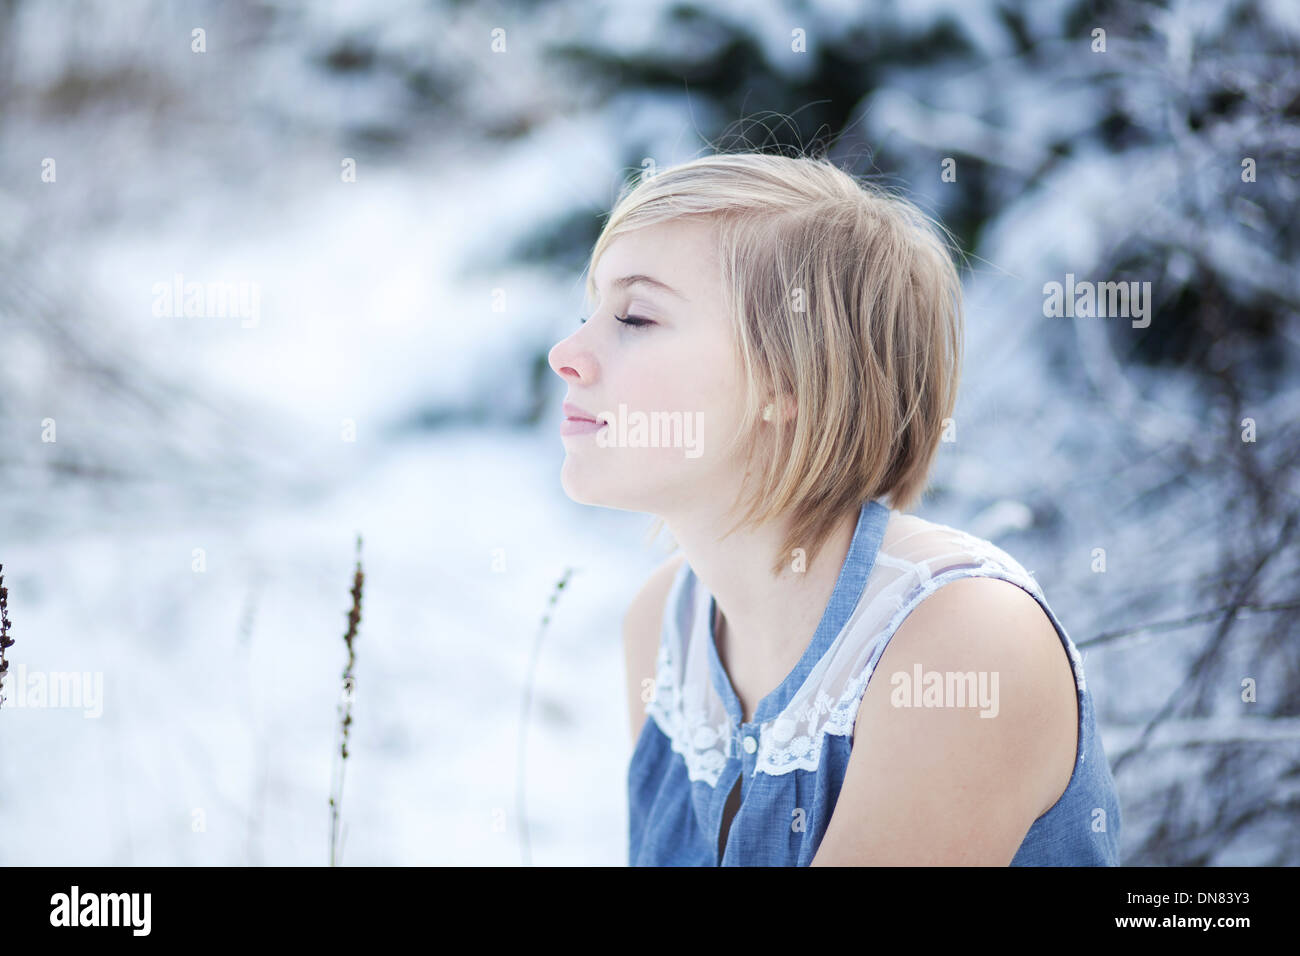 Portrait of a young woman in snow - Stock Image